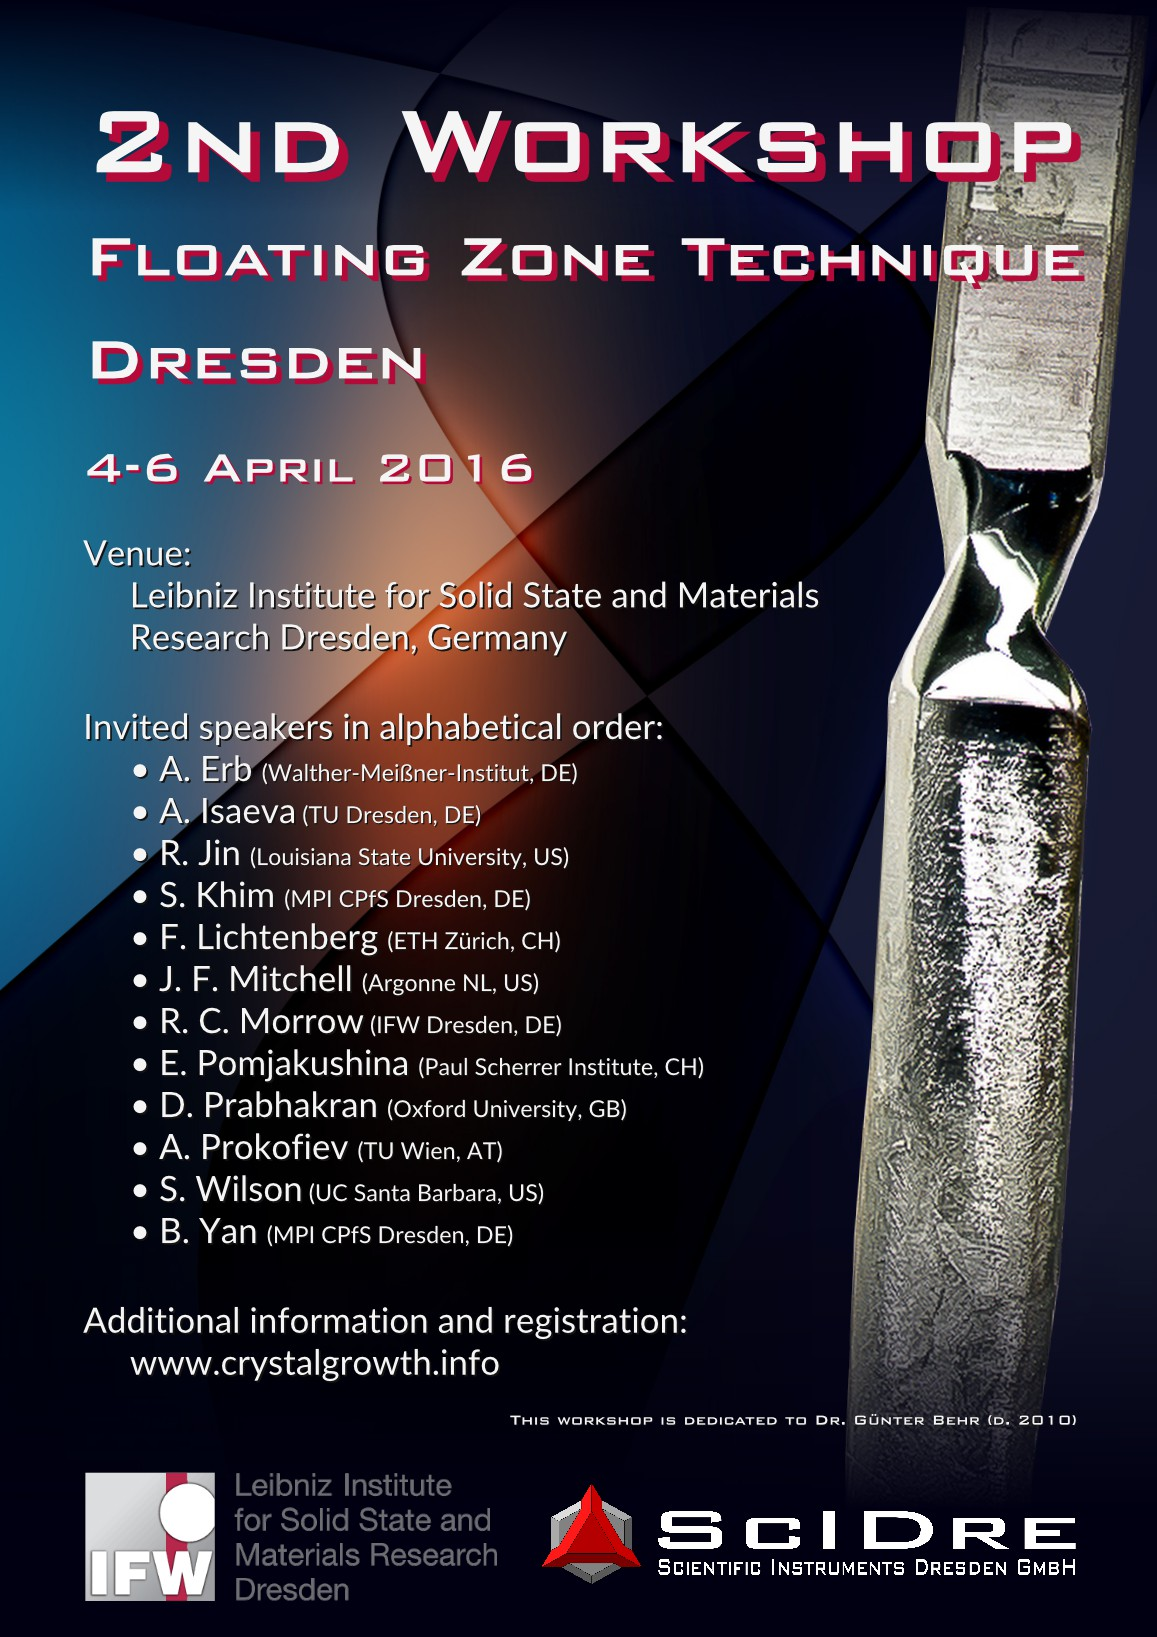 2nd Floating Zone Workshop